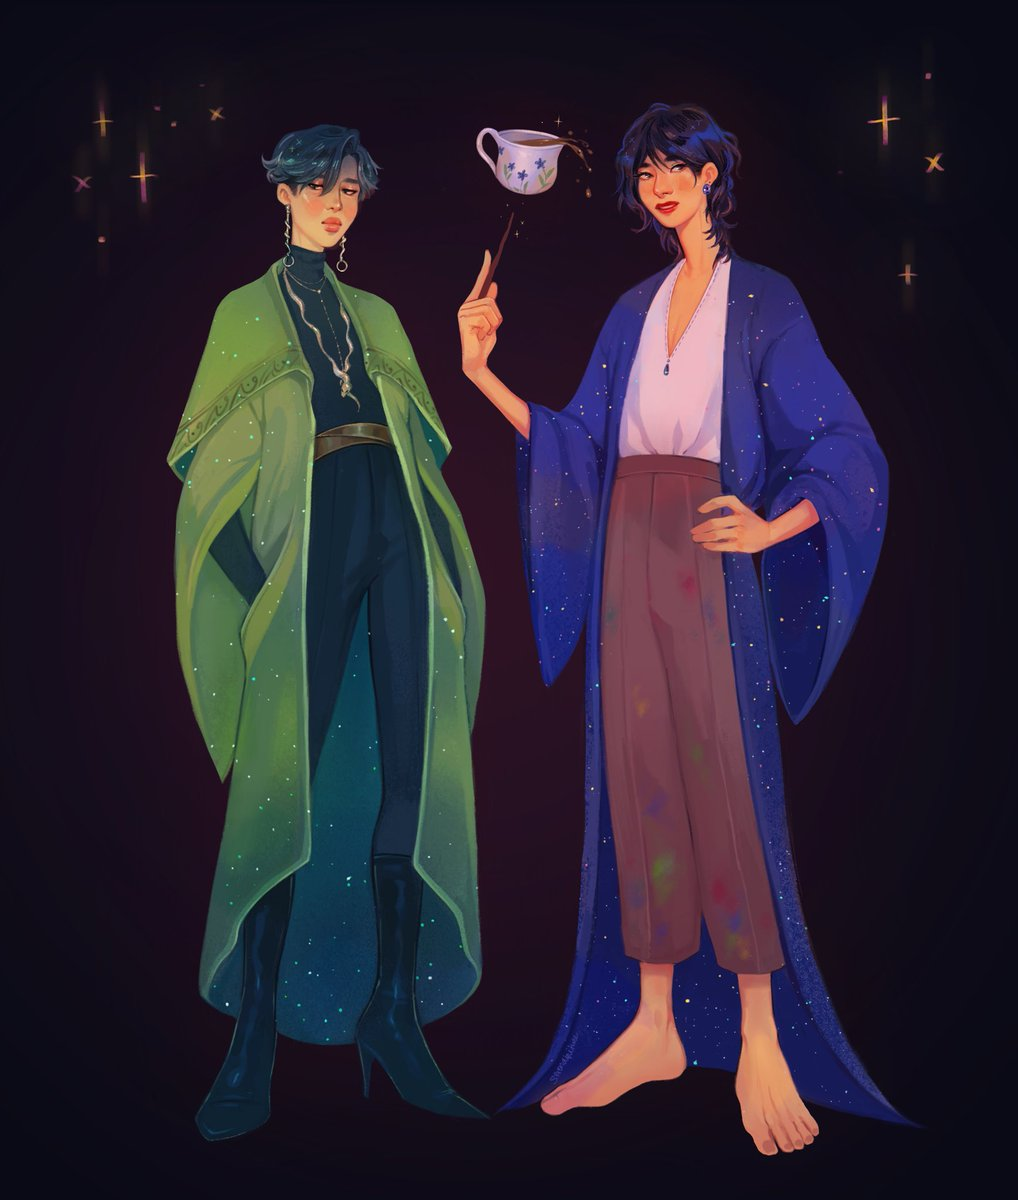 proud hogwarts alumni still donning their house colors several years after graduating  #vmin<br>http://pic.twitter.com/9cfCV69Wa7